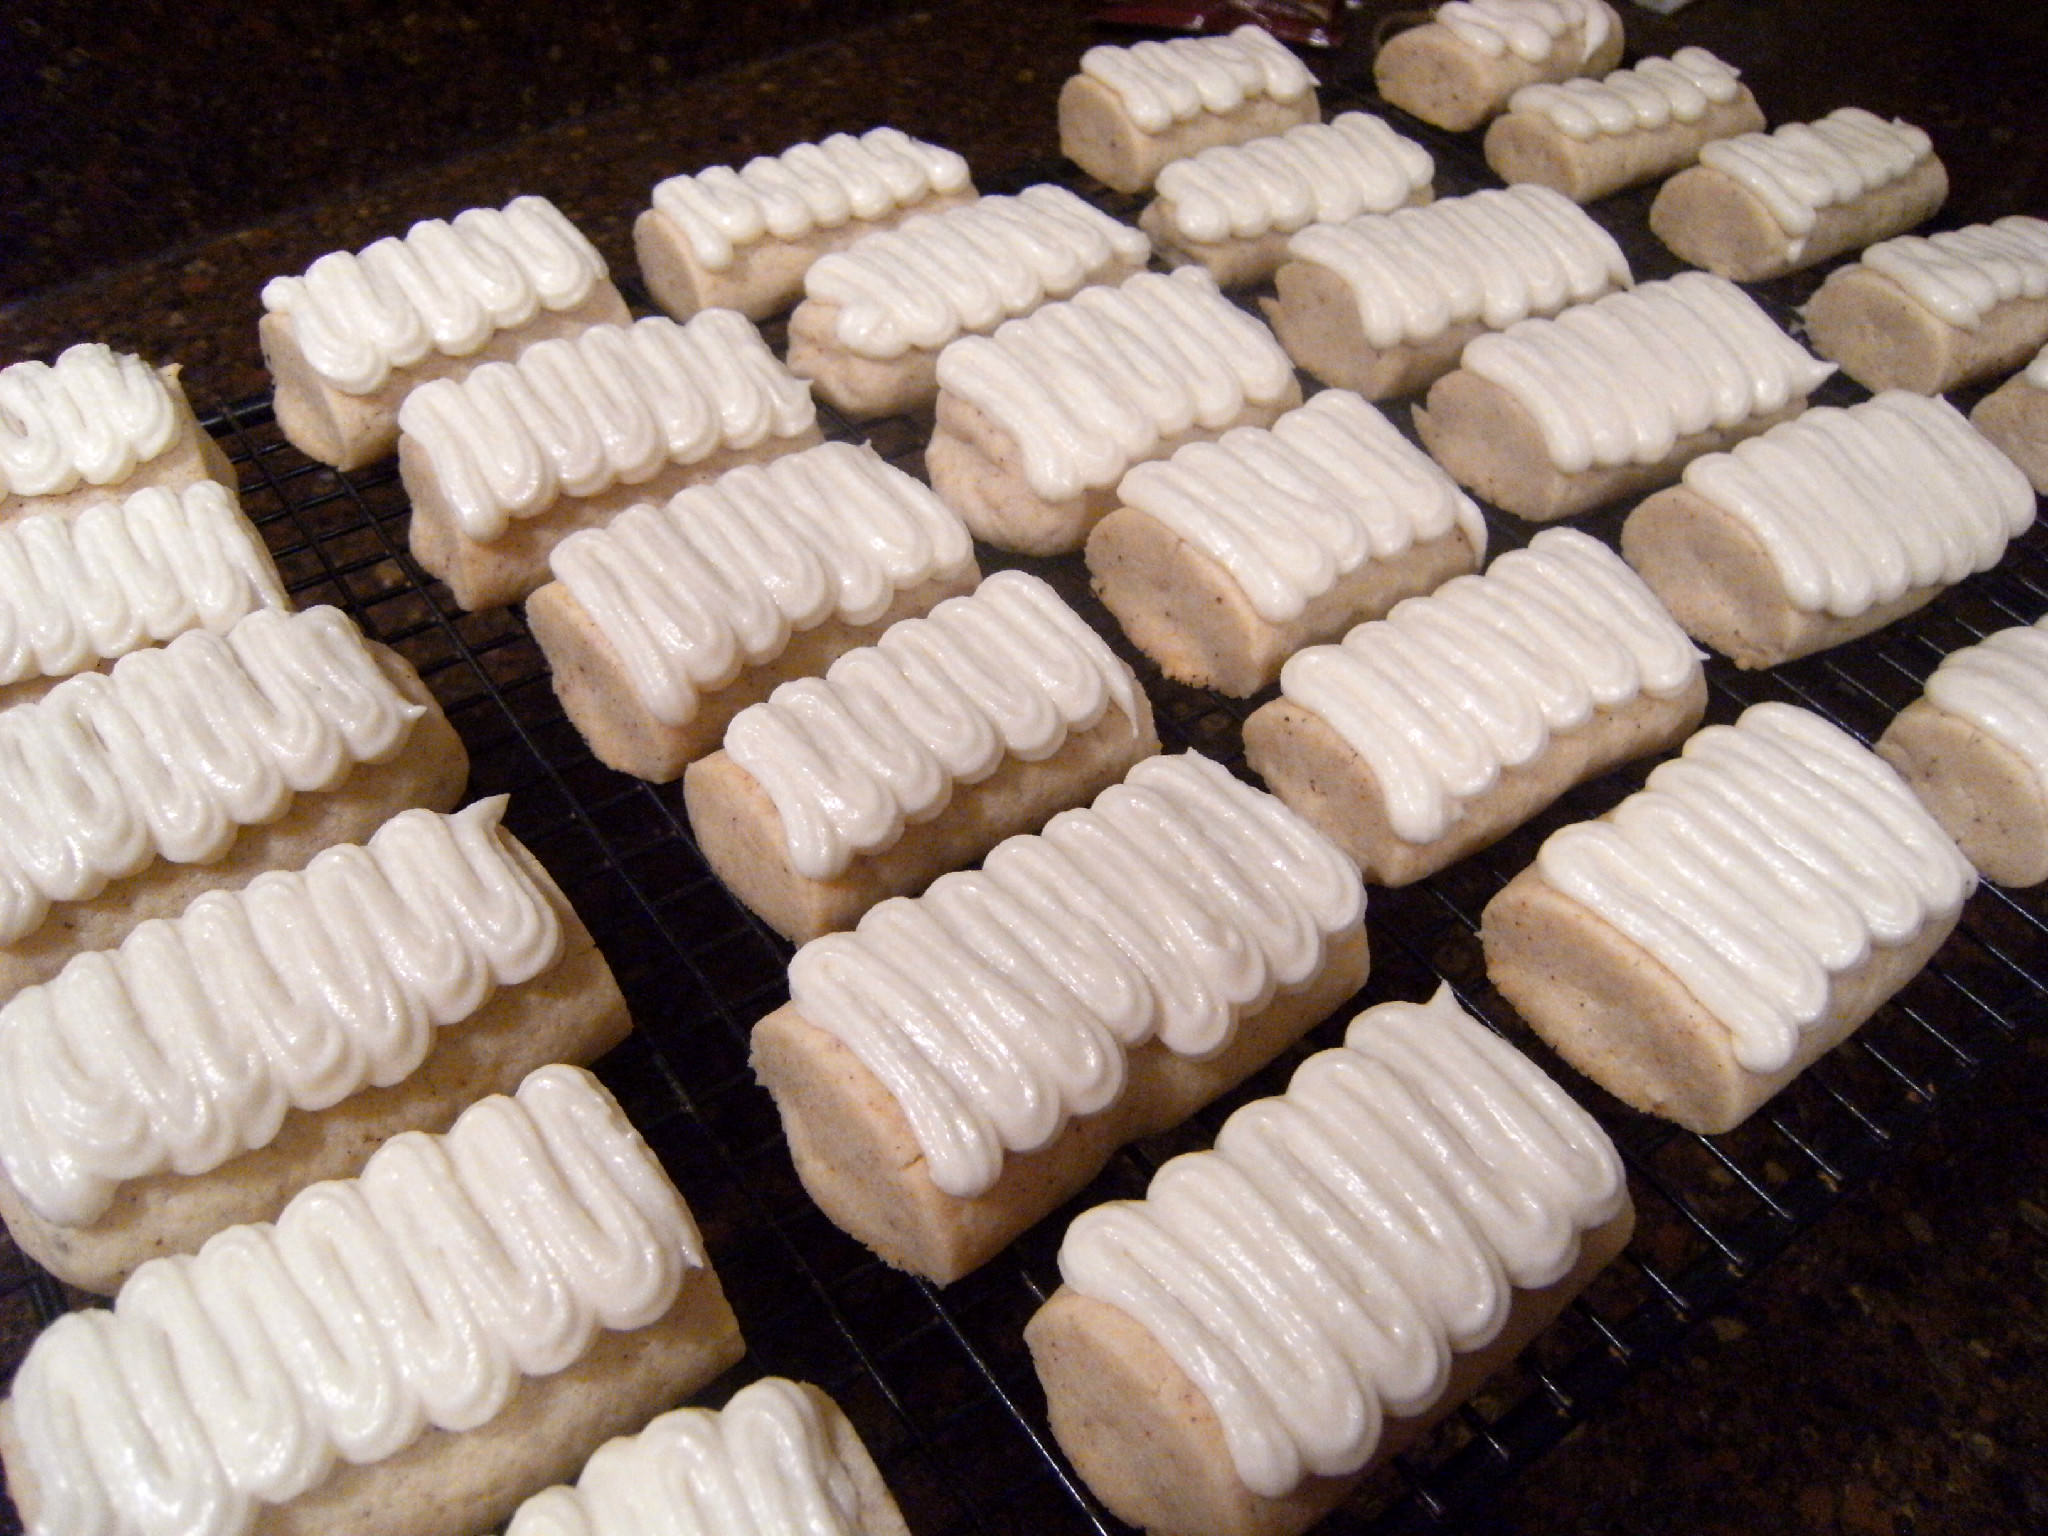 Egg-Nog-Logs are soft butter cookies infused with the flavors of egg nog, then topped with a rum flavored buttercream frosting. Alcohol free! - Get the holiday cookie recipe on www.ComfortablyDomestic.com